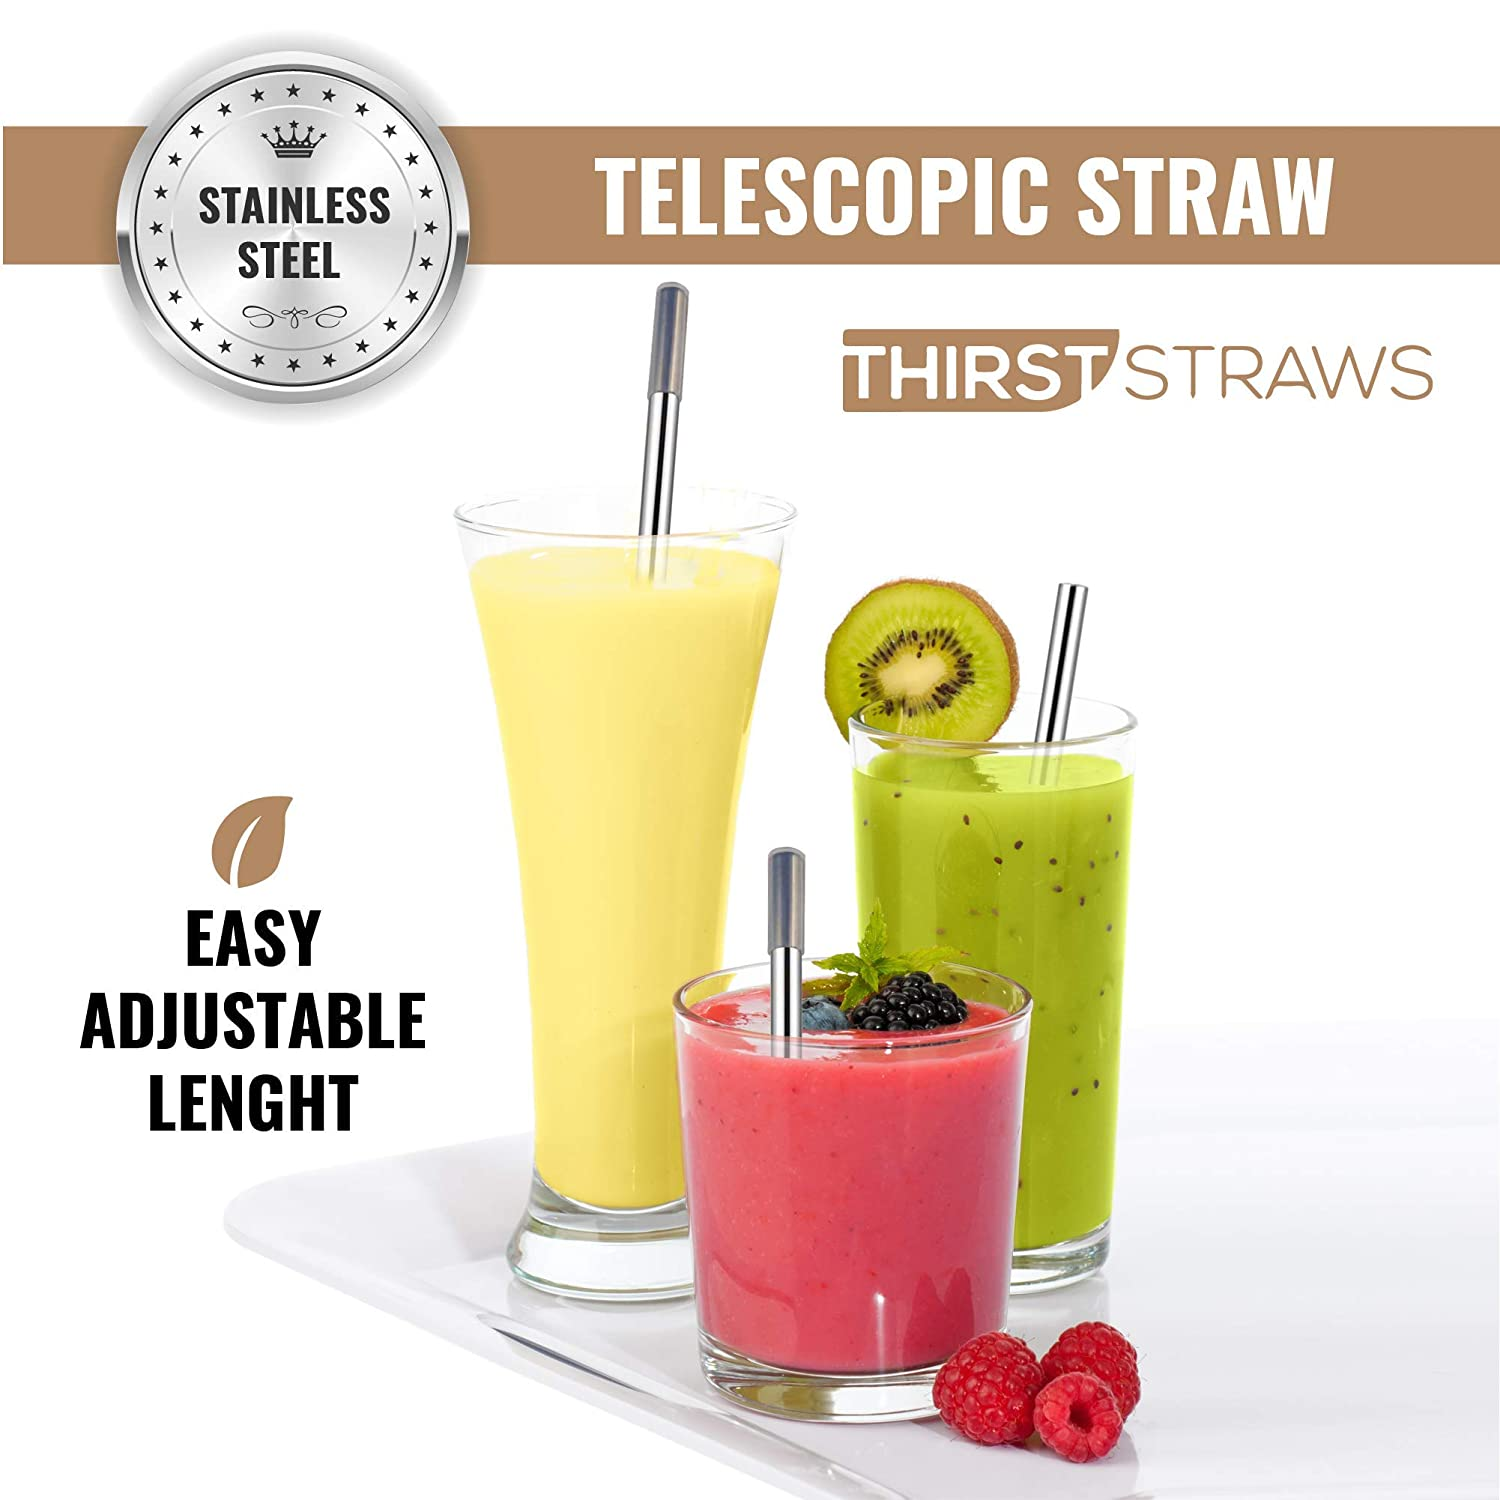 Environment Thirst Straws Telescopic Reusable Straws 2 Pack Folding Metal Straw with Case in Stainless Steel Ideal for Parties Celebrations Home Travel Office